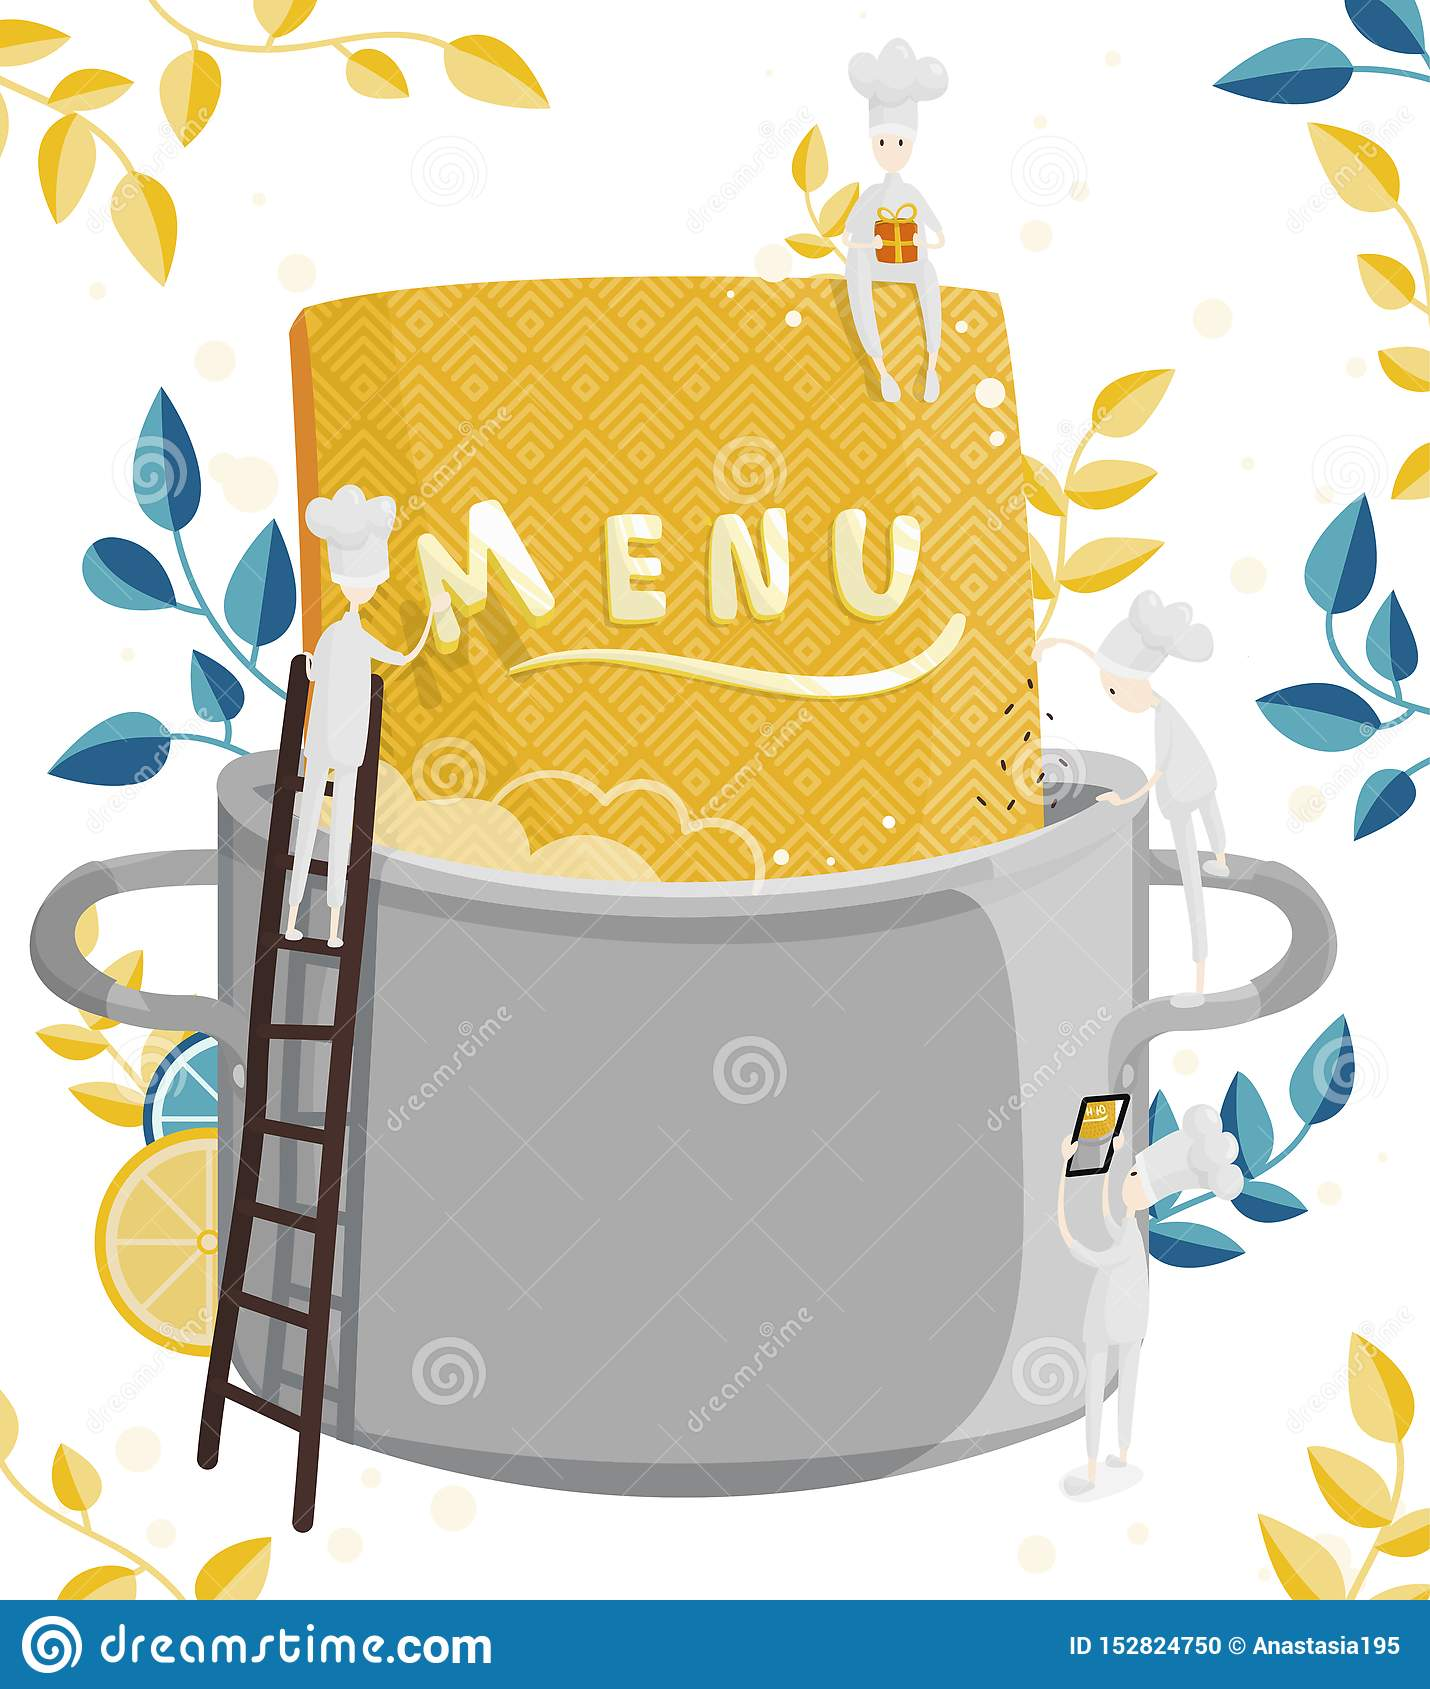 Little Characters Cooks Come Up With A Menu Illustration Of Menu Creation For A Restaurant Or Cafe Stock Vector Illustration Of Process Printing 152824750